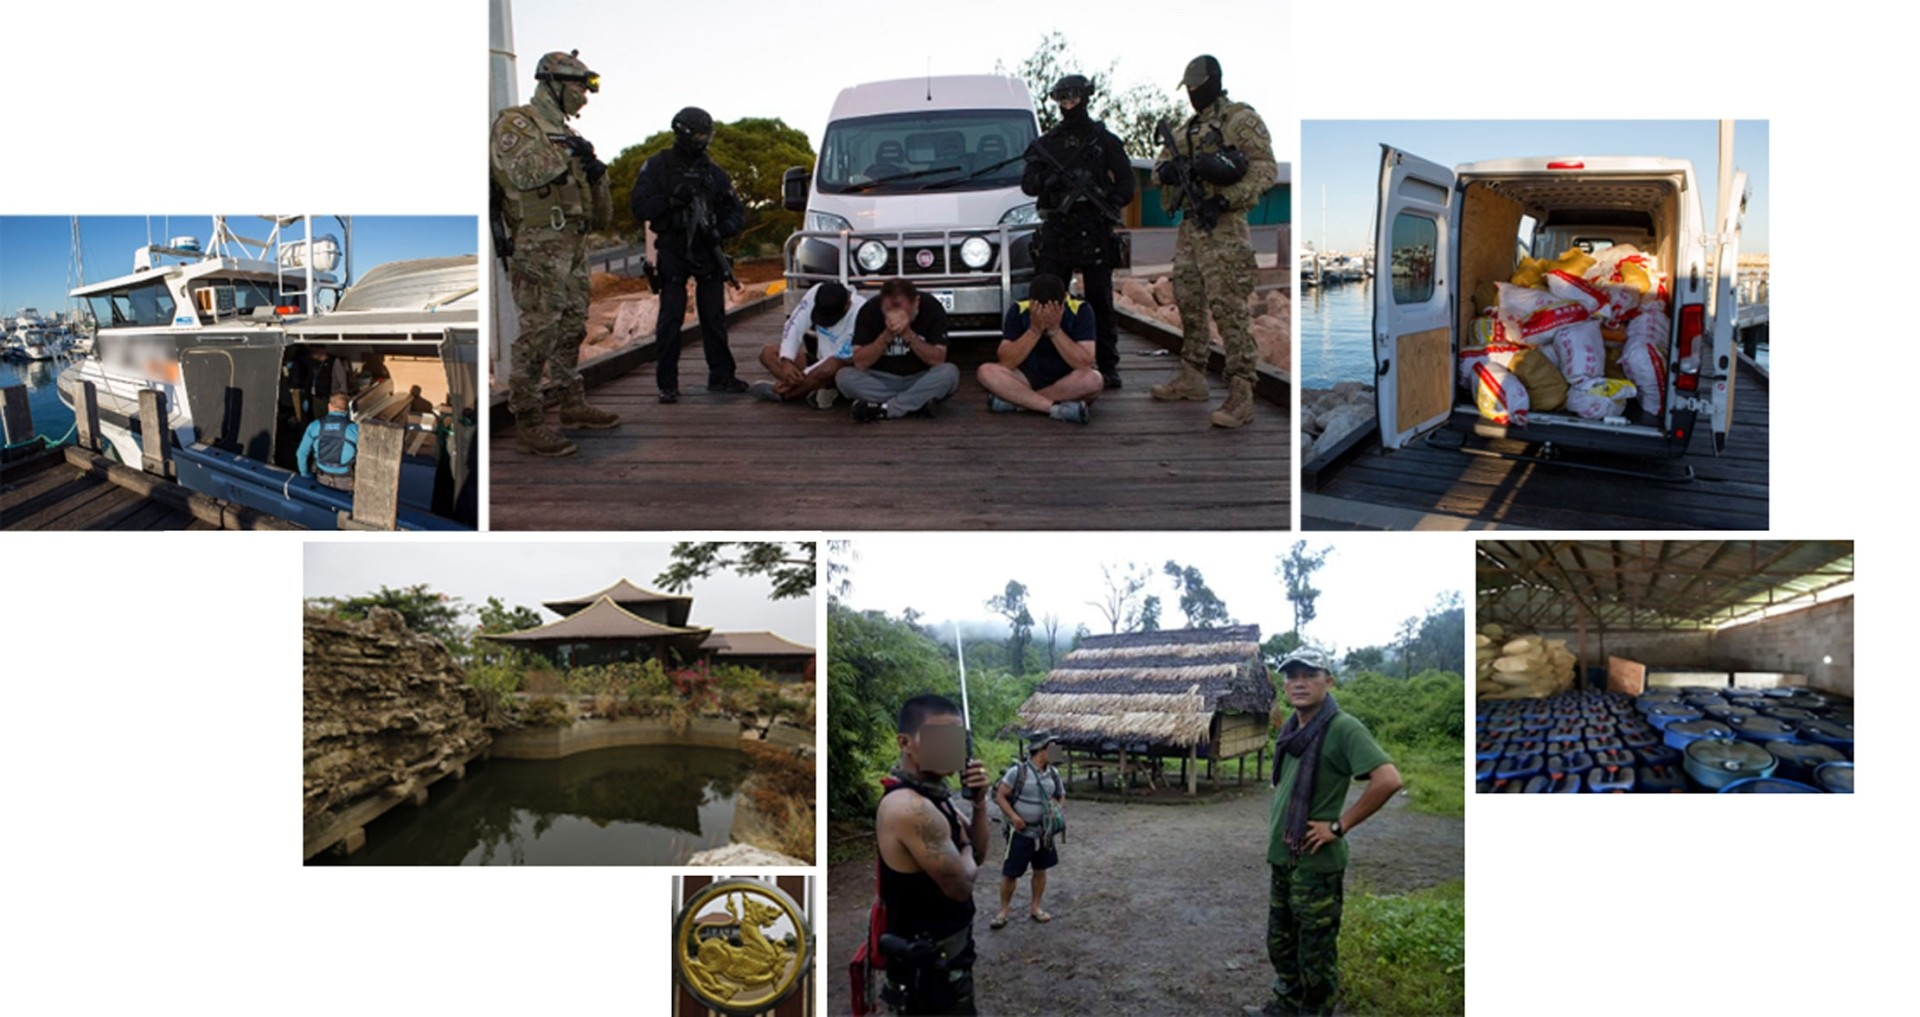 The police have had some wins, like the 2017 busts in Shan State and the remote Western Australian city of Geraldton where they seized 1.2 tonnes of meth and arrested alleged traffickers. They had less luck when they raided the compound of suspected senior syndicate member Sue Songkittikul (bottom row, wearing cap) in Thailand in December. He wasn't there. - Reuters